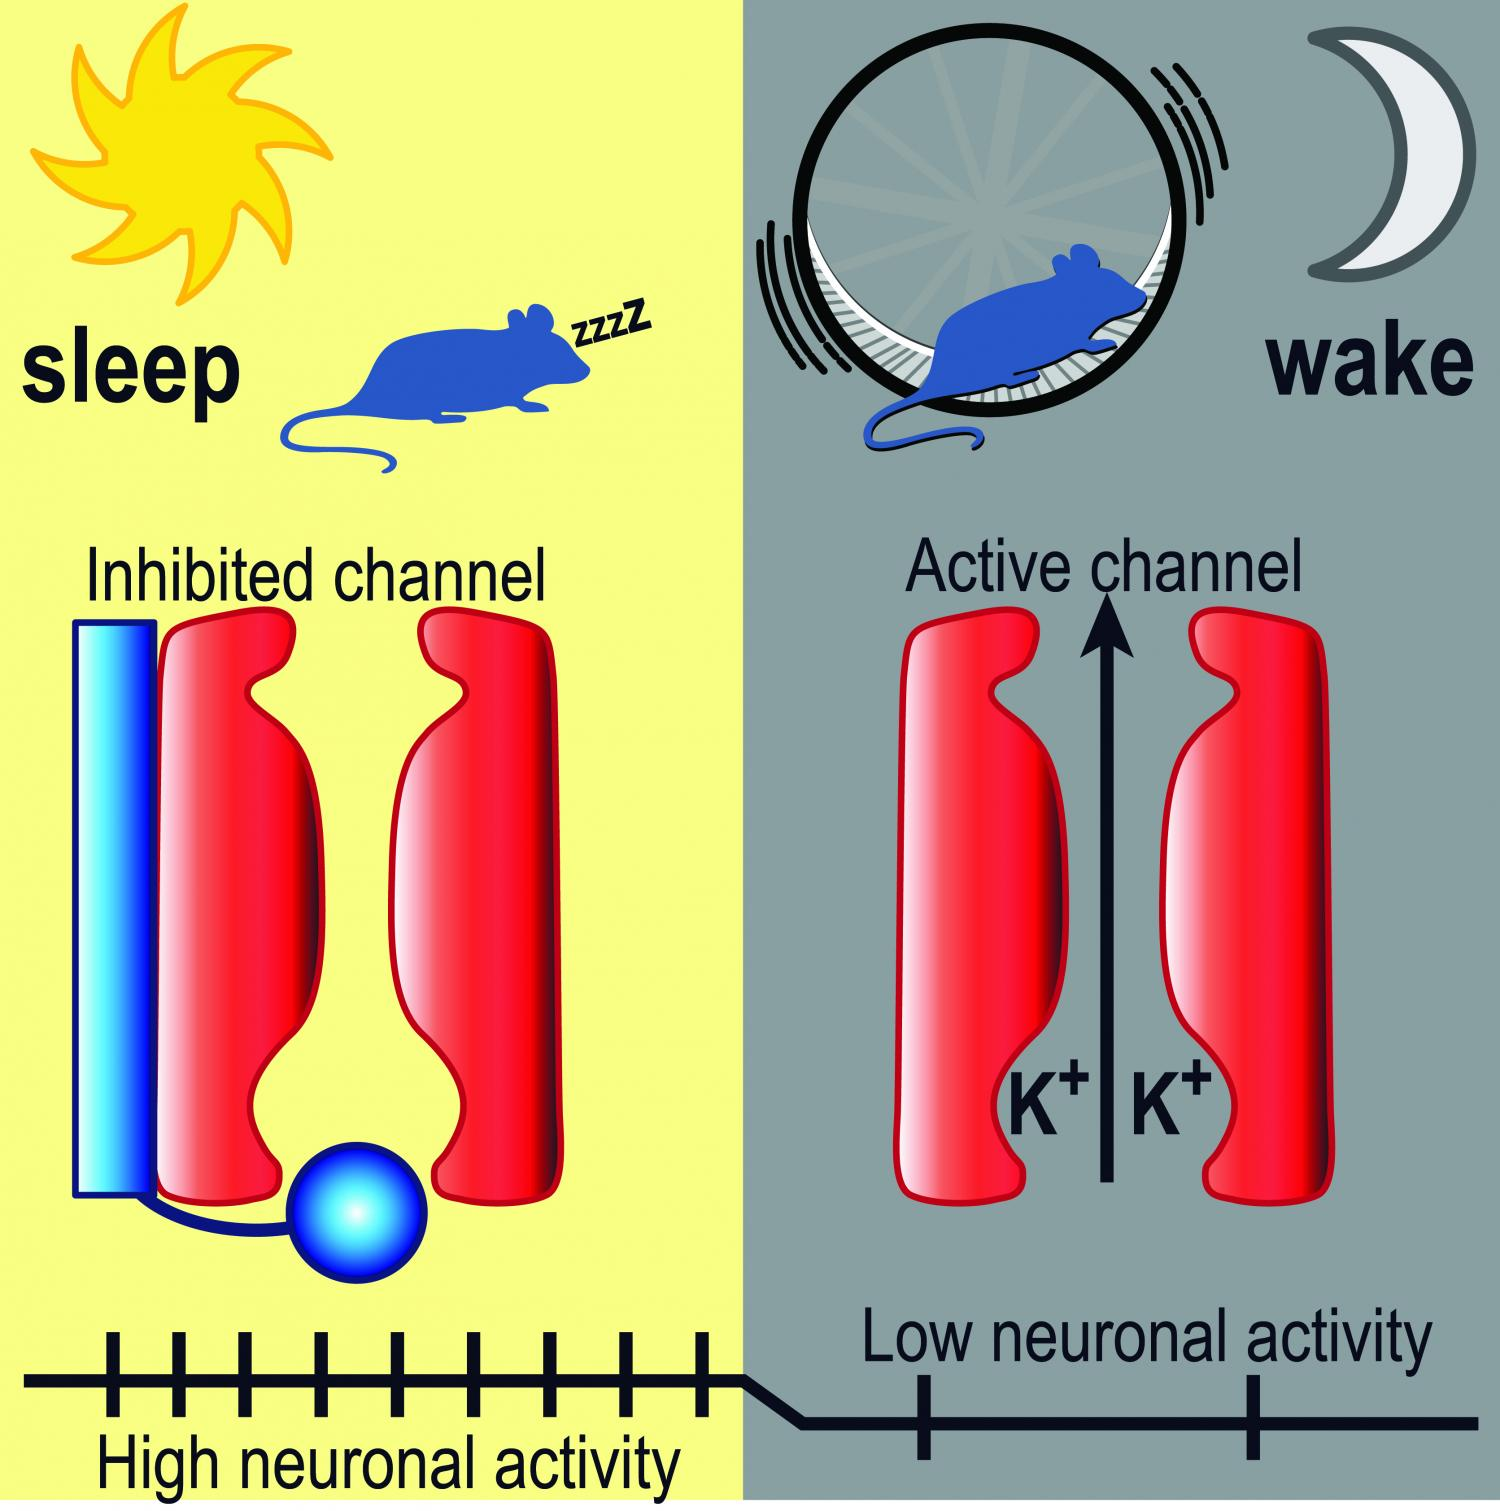 New Study Illuminates Key Aspects Of How We Fall Asleep And Wake Up